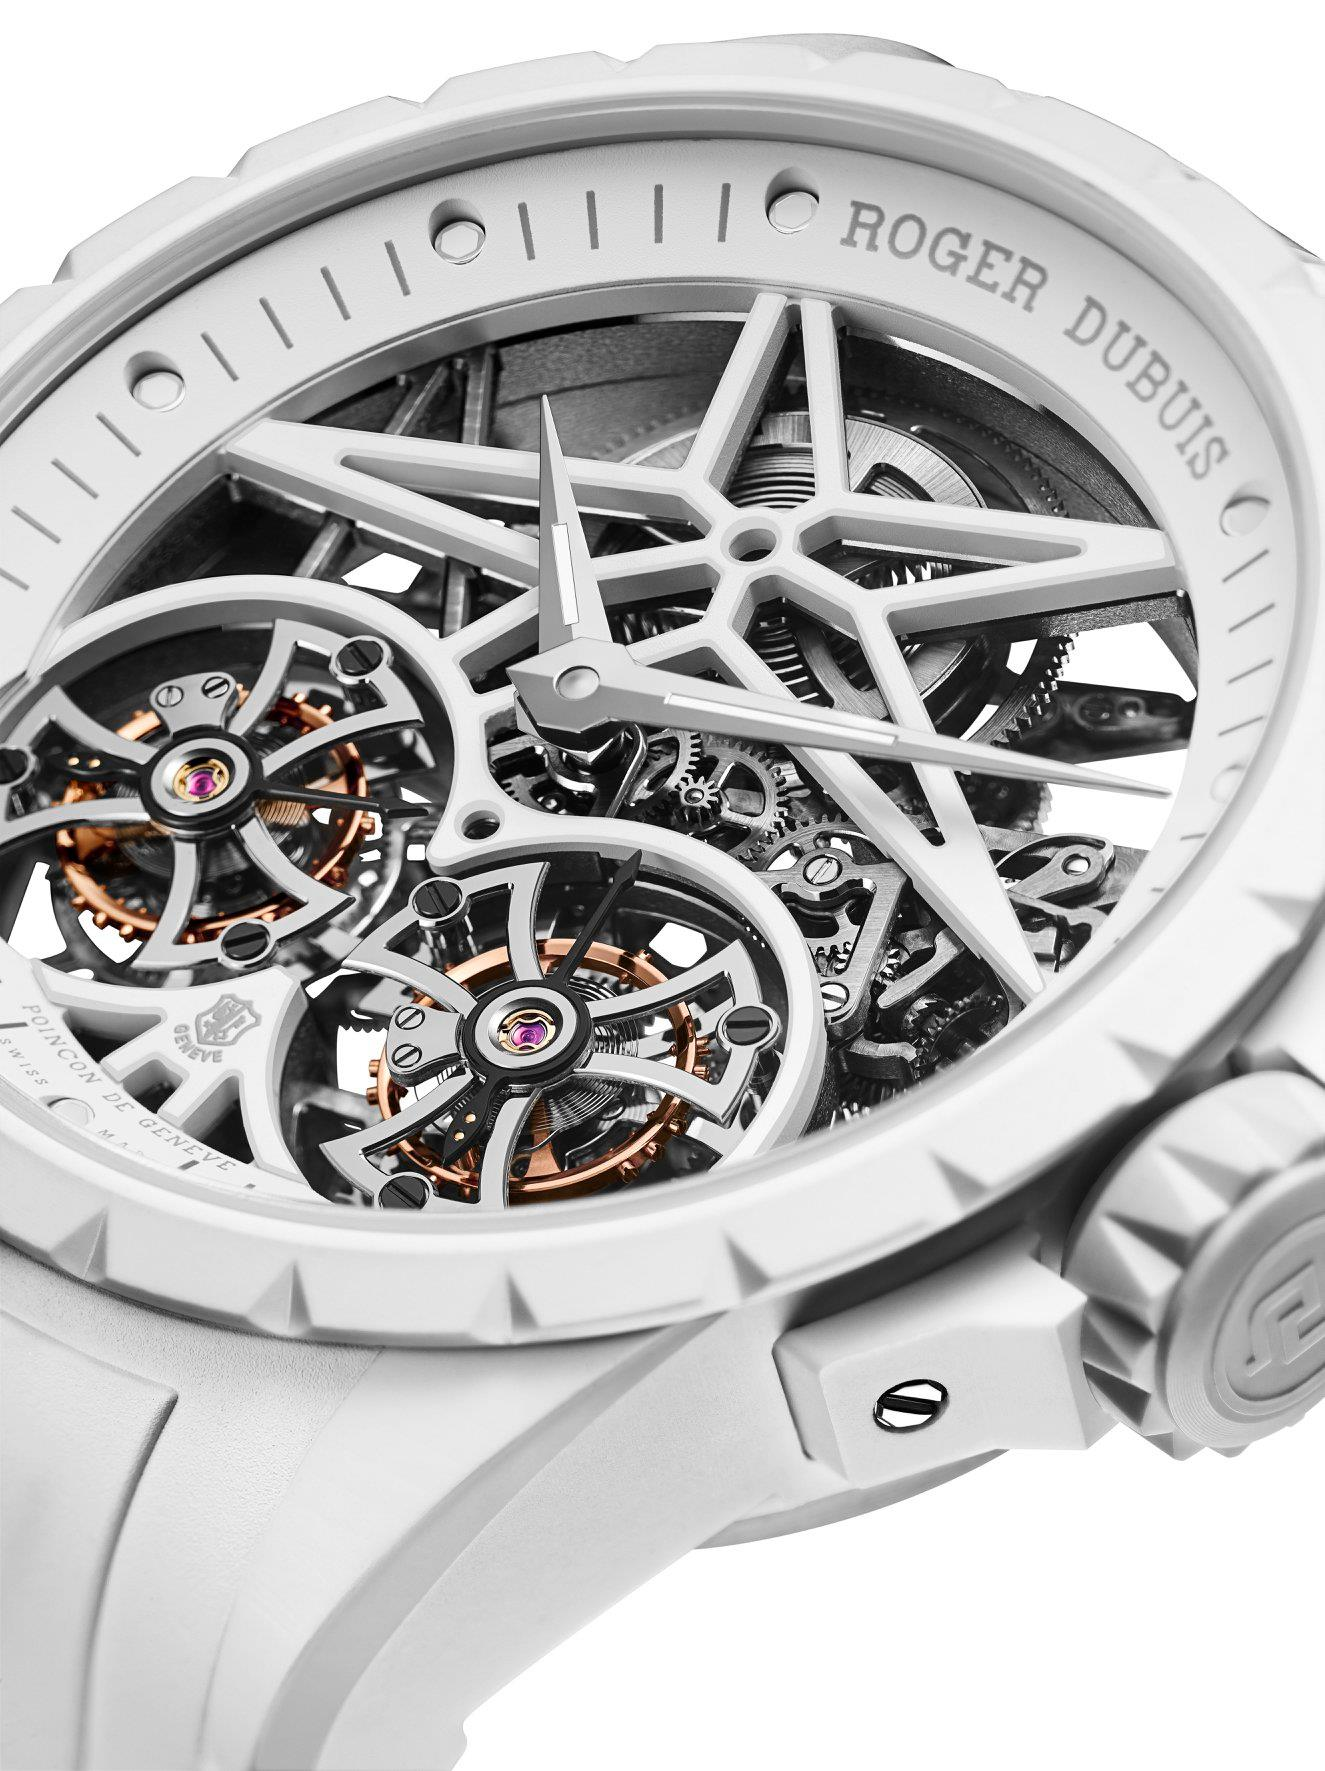 Roger Dubuis Excalibur TwoFold-blanco